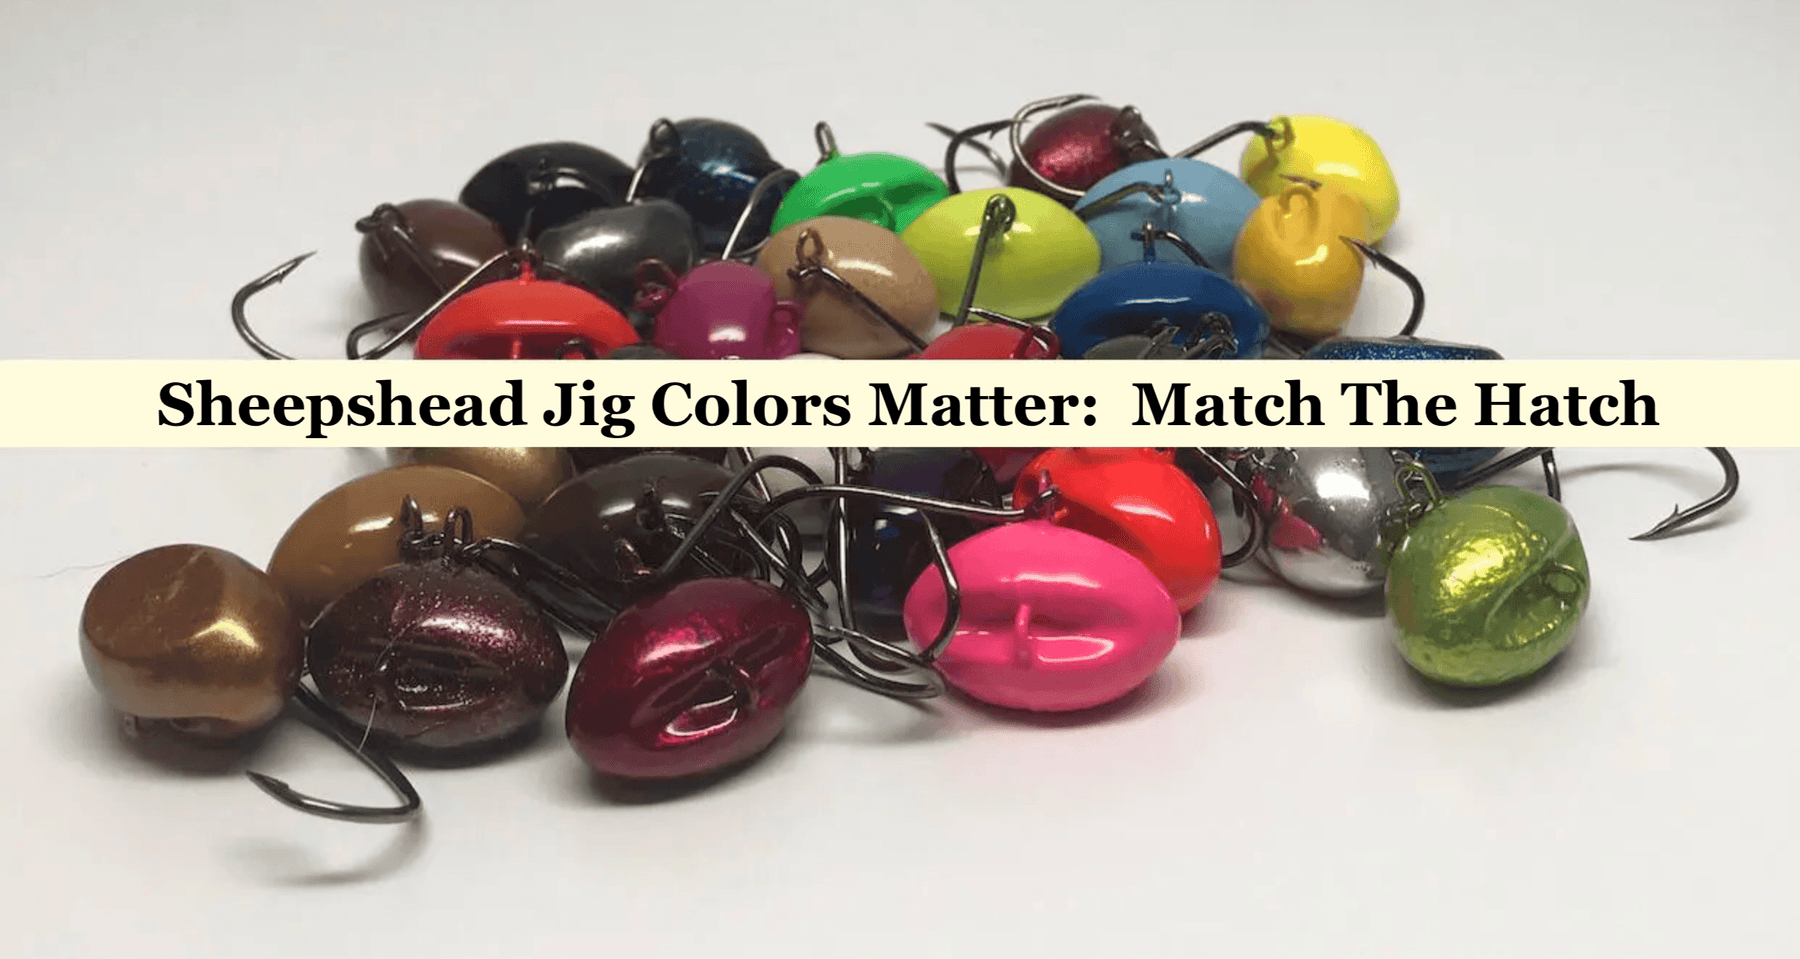 Sheepshead Jig Colors Matter -  Match The Hatch